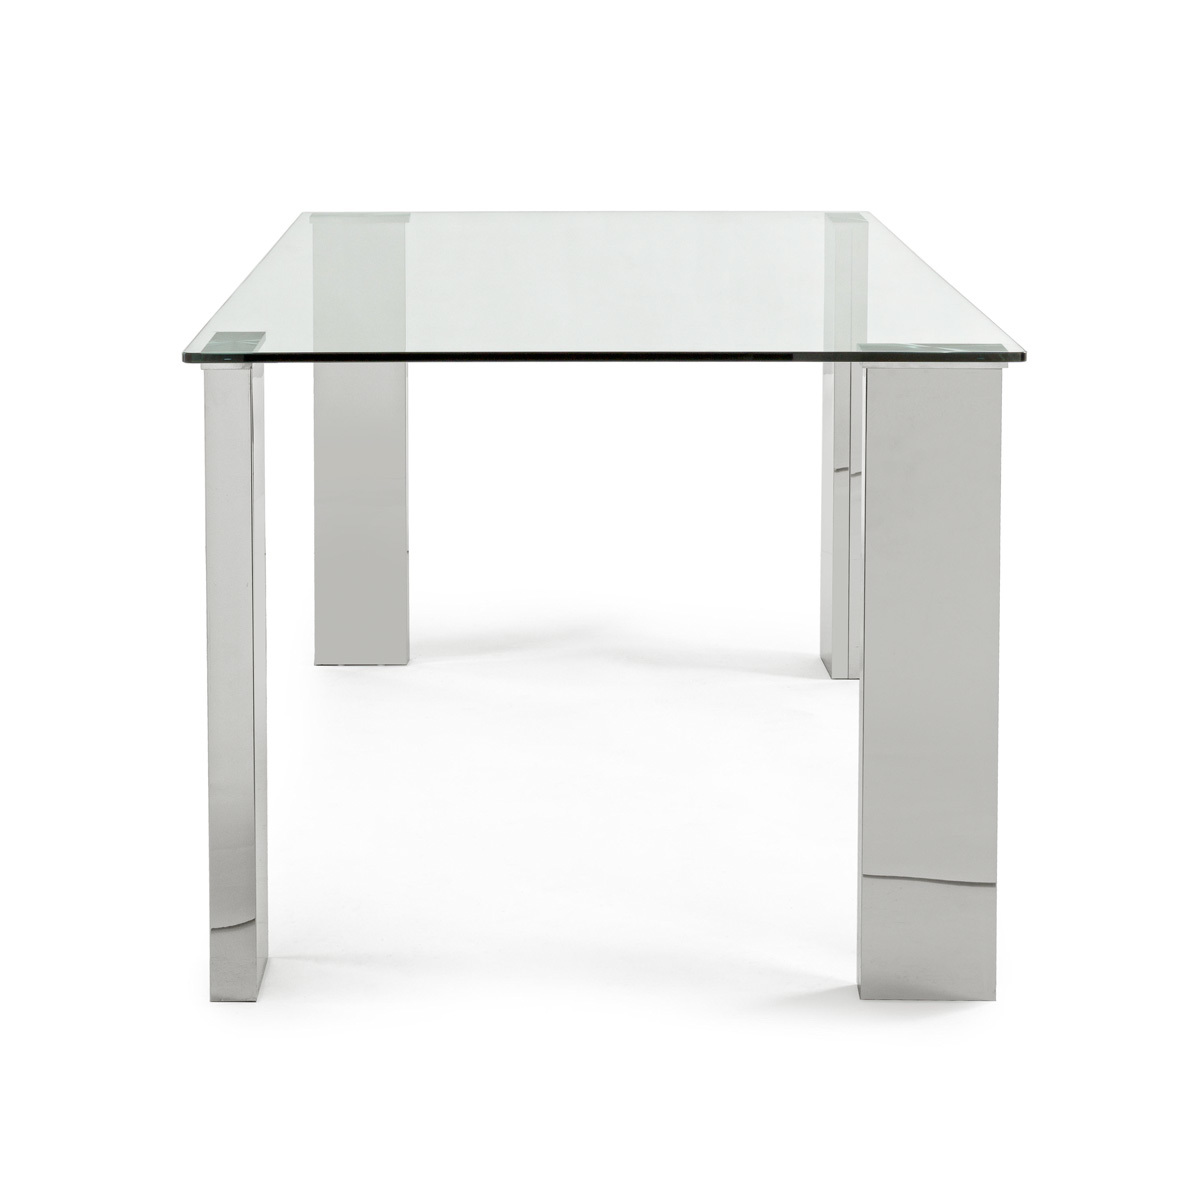 Photos 3: Bizzotto Fixed rectangular table l. 160 x 90 0732136